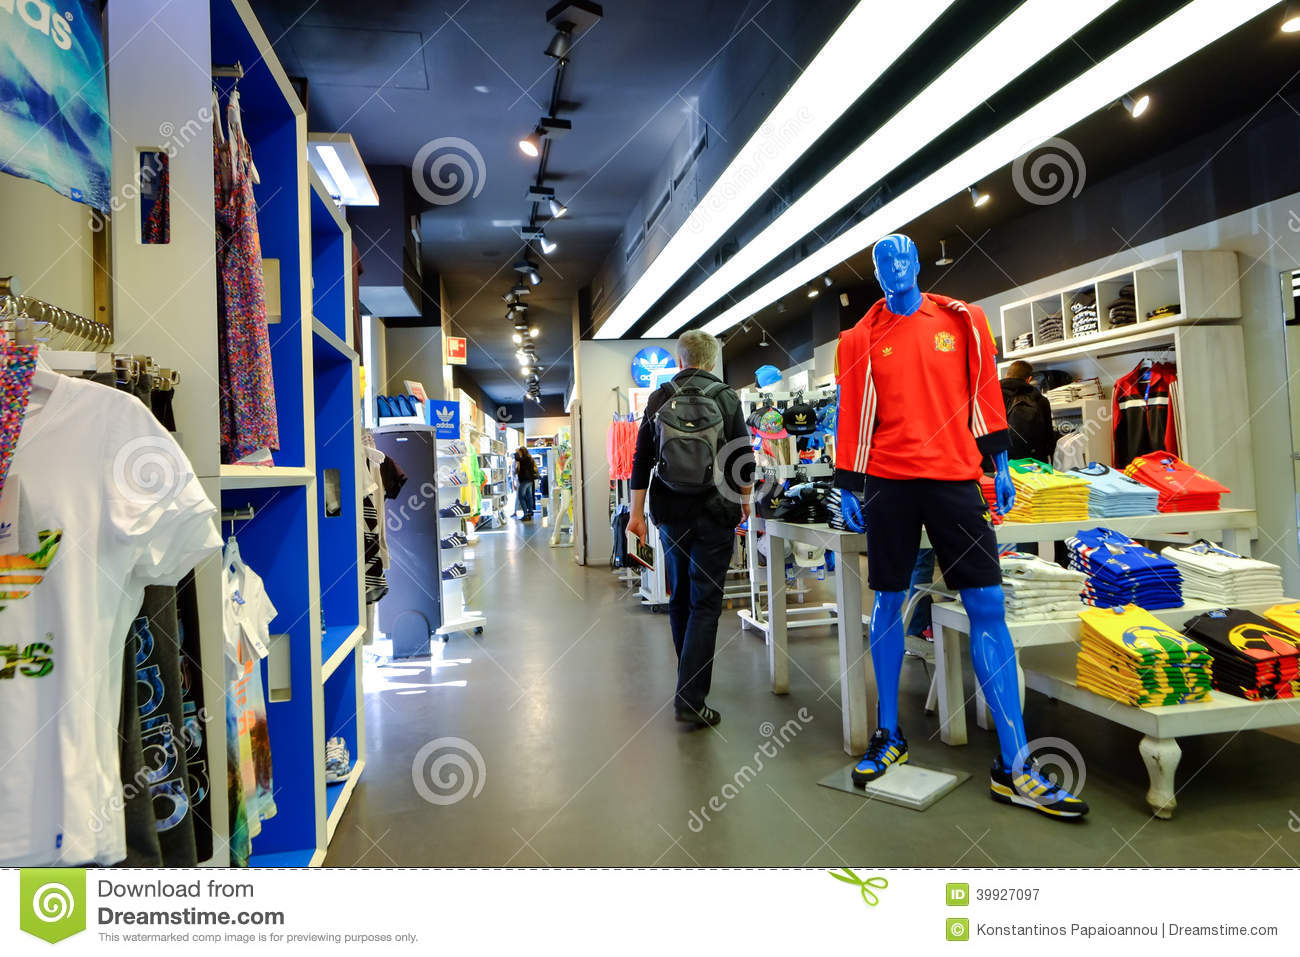 United kingdom clothing stores. Clothes stores